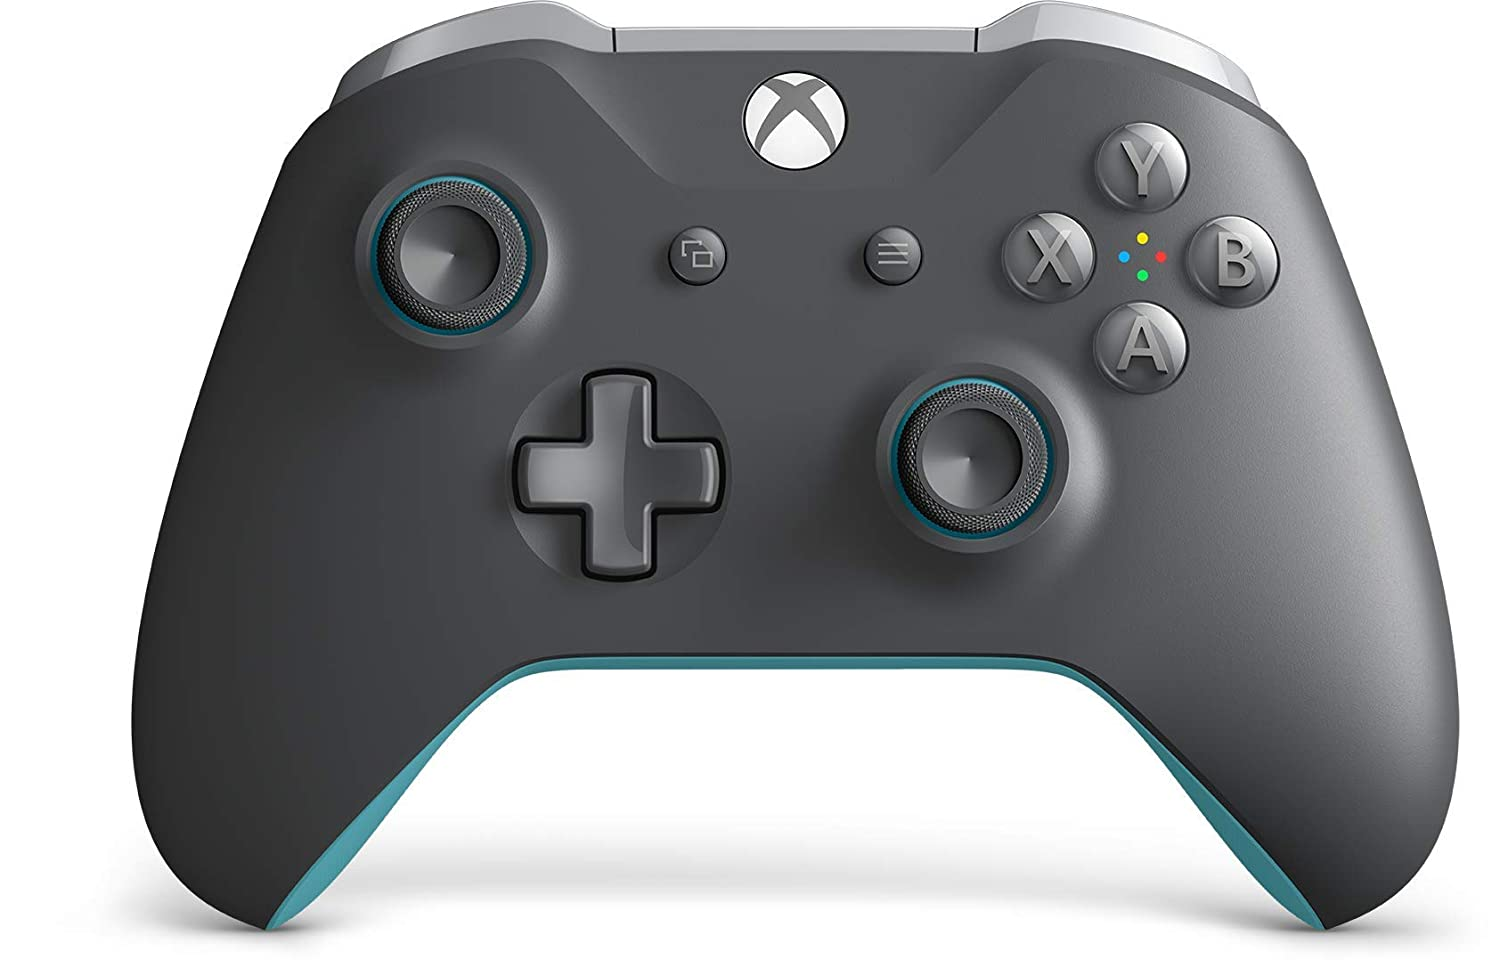 The Xbox Wireless Controller in a gray and light blue colorway.